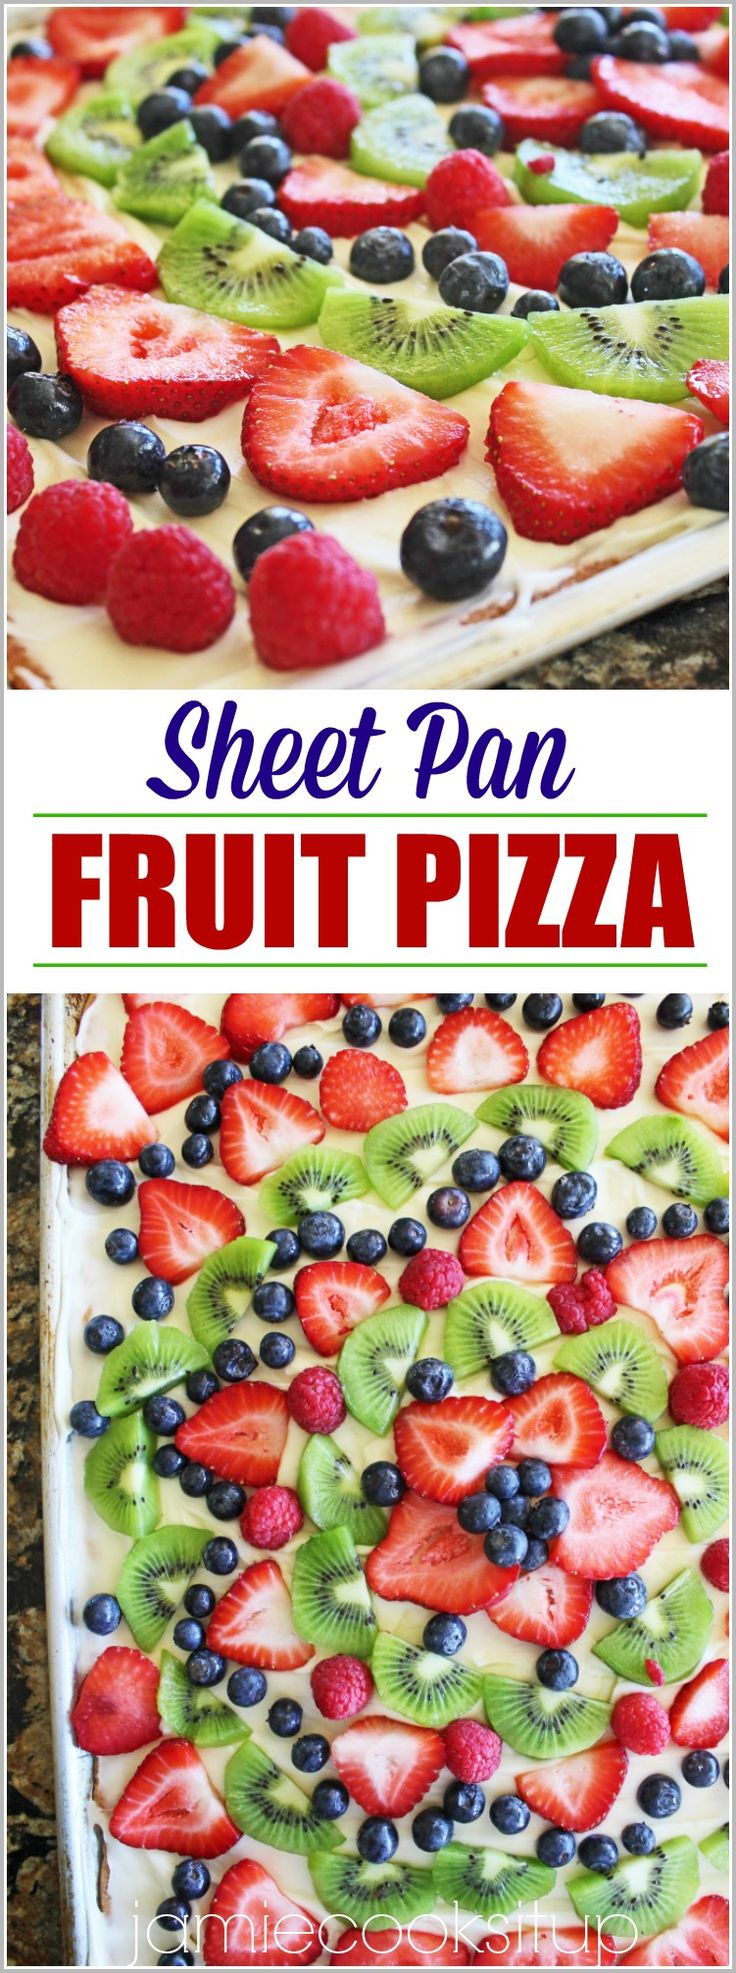 If I coulddo anything in my power to convince you to make this amazing Fruit Pizza, I would do it my friends. Not only is it stunning to look at…not only will it produce many servings to fee…